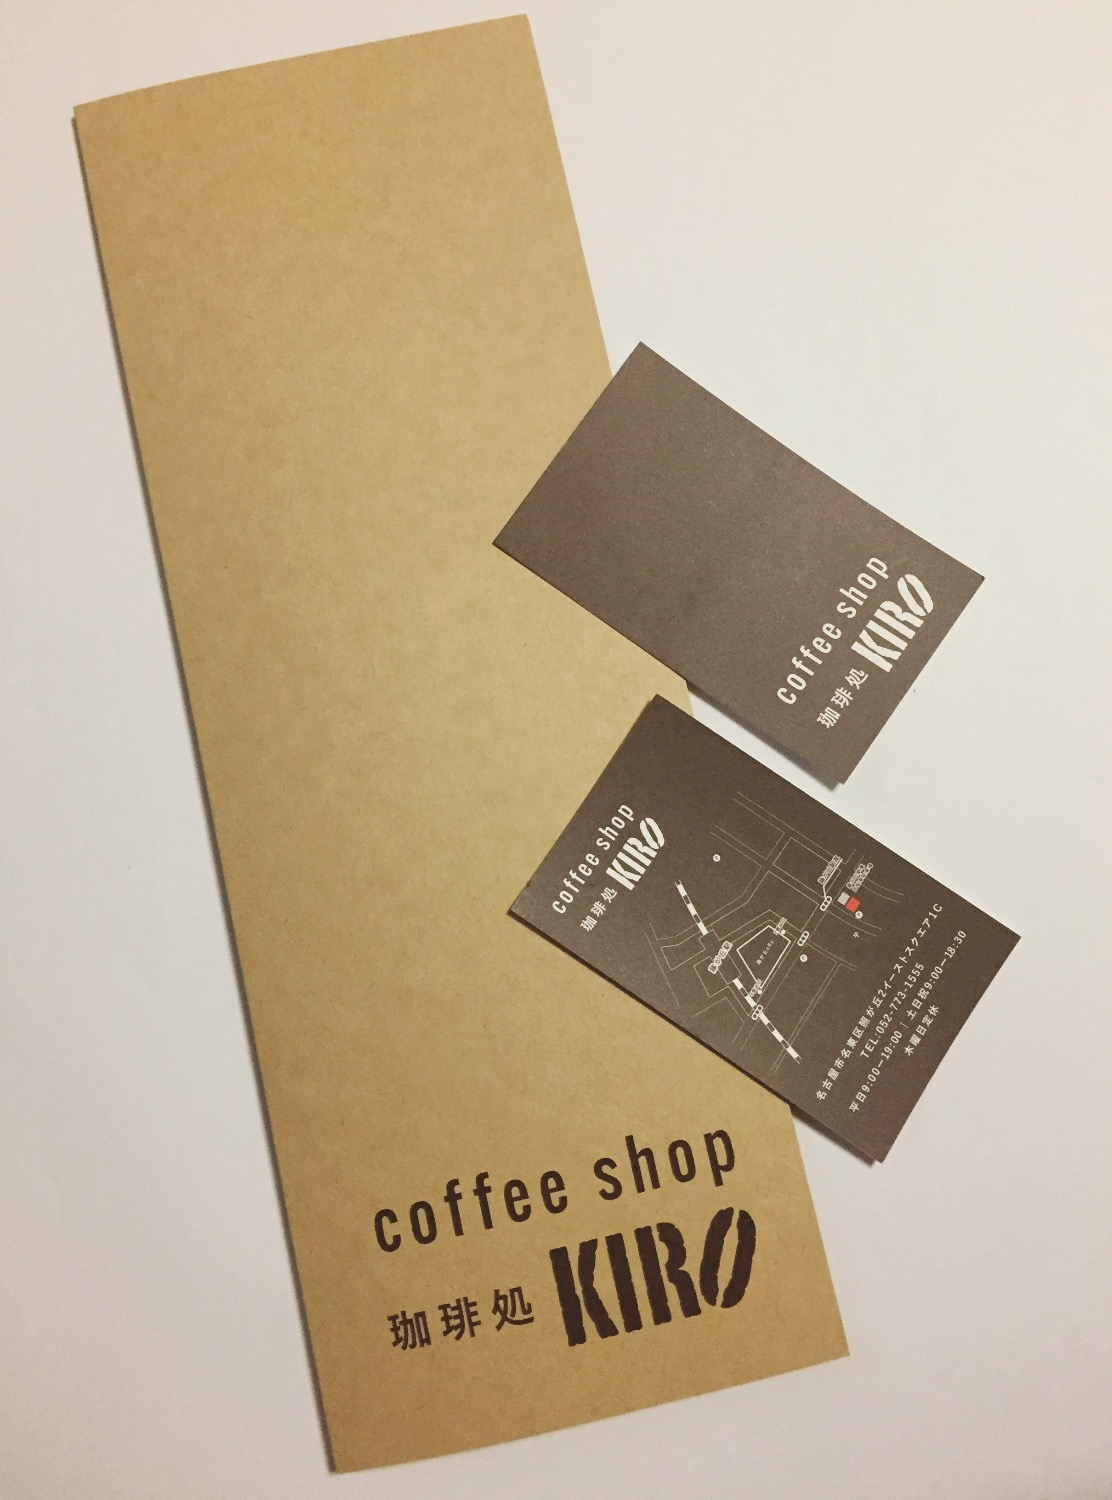 coffee shop 珈琲処 KIRO opening tool